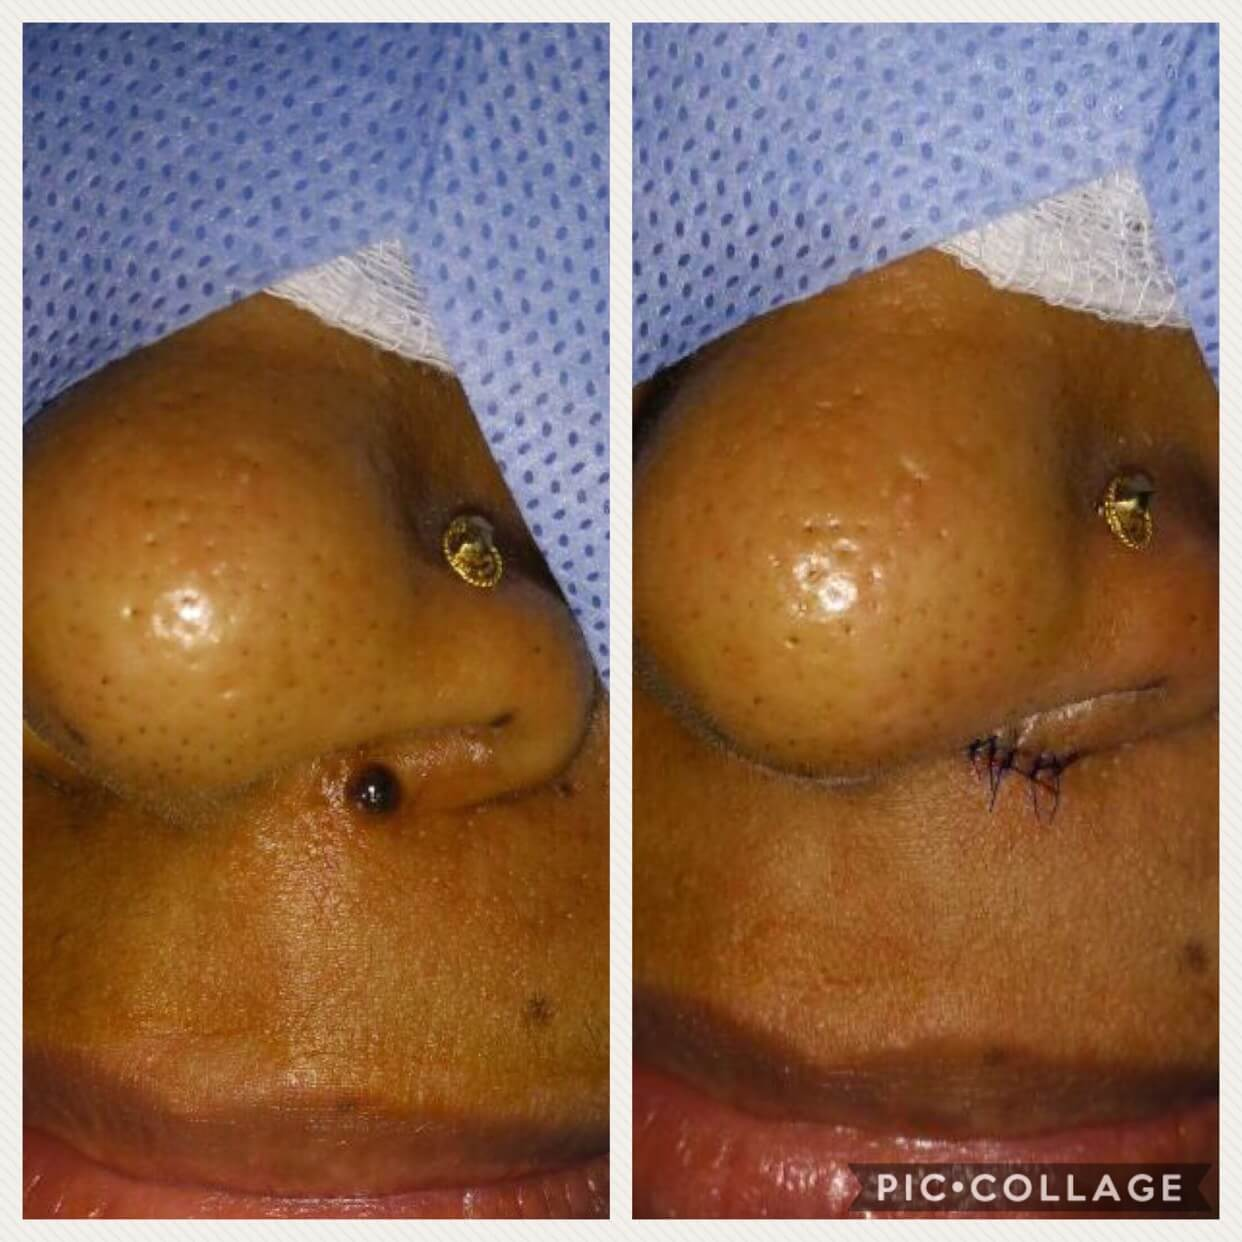 Mole excision immediate post op